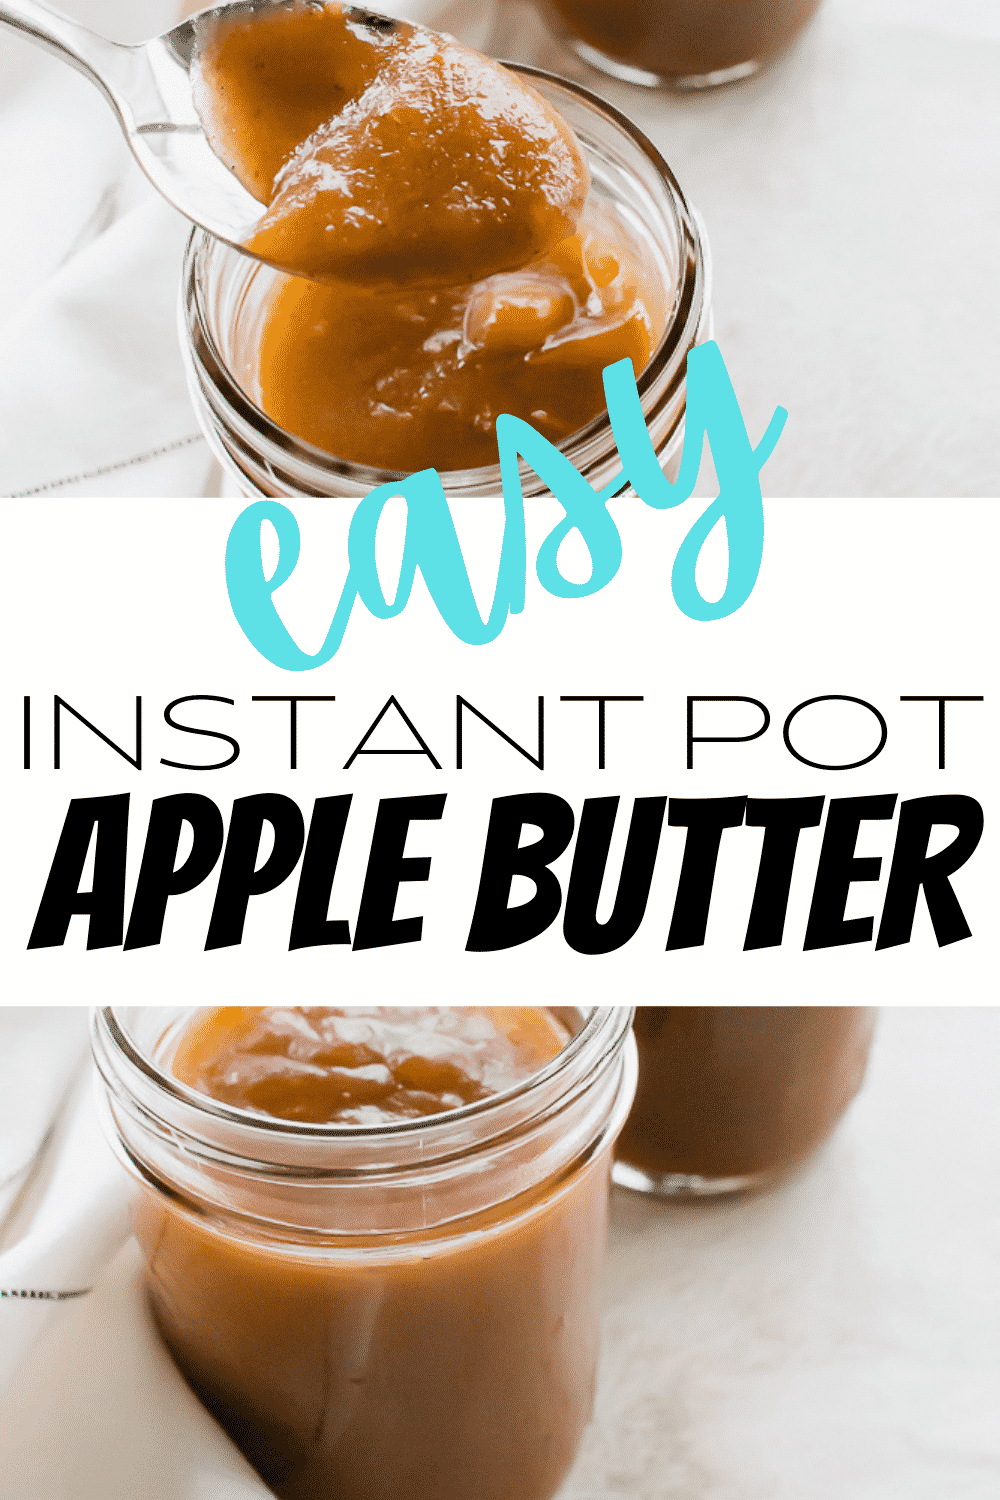 Instant Pot Apple Butter is the best vegan fruit spread made with whole apples and a bunch of fall flavors. No need to simmer apples, cinnamon, nutmeg, and cloves all day thanks to this handy pressure cooker! #applebutter #pressurecookerapplecutter #instantpotapplecutter